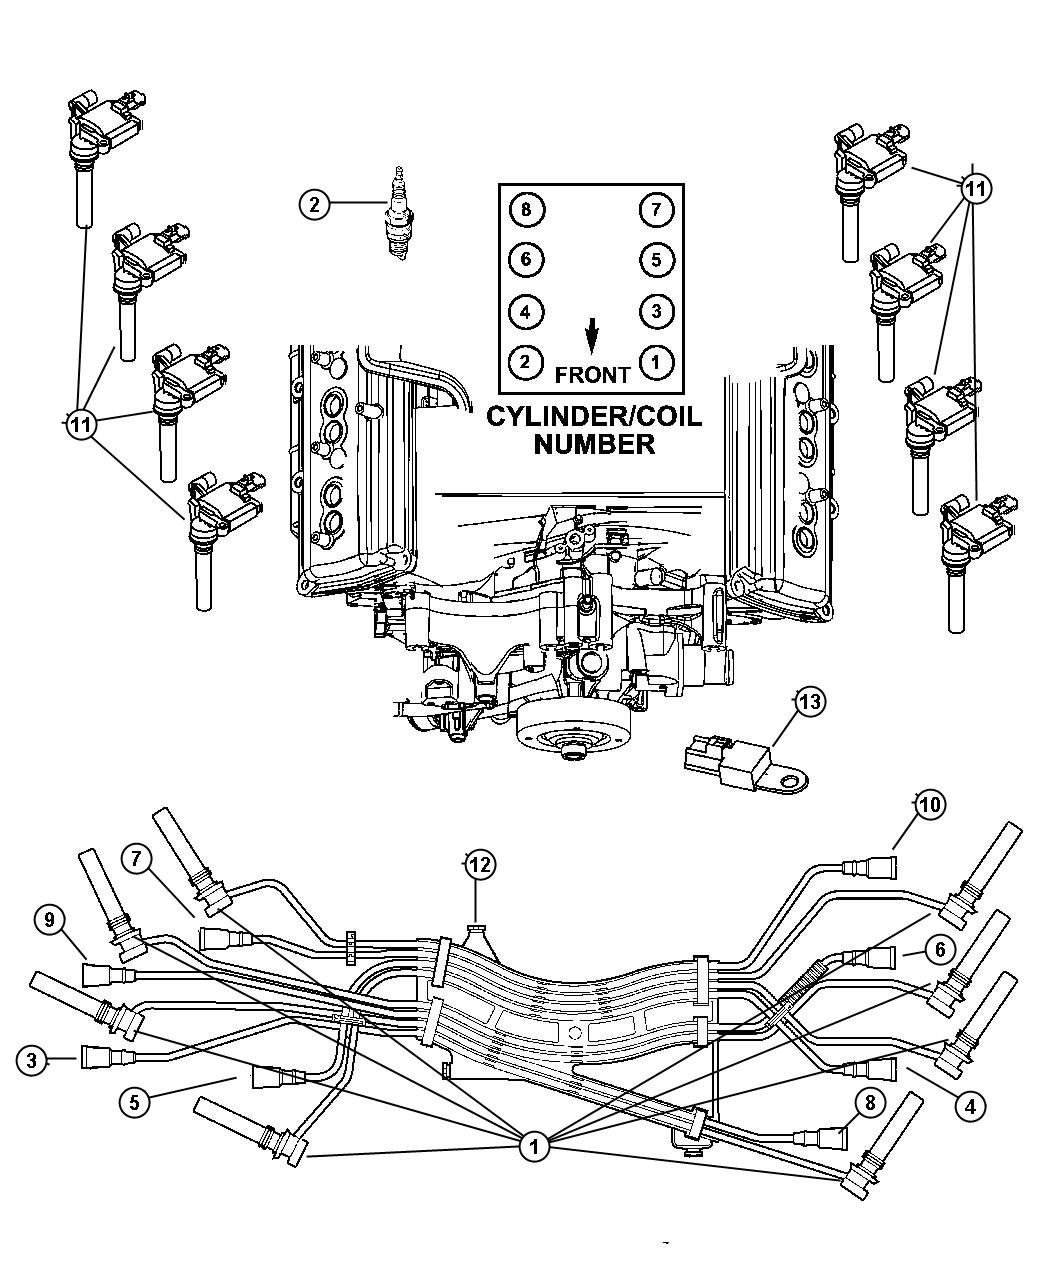 Dodge Charger 5 7 Hemi Engine Diagram